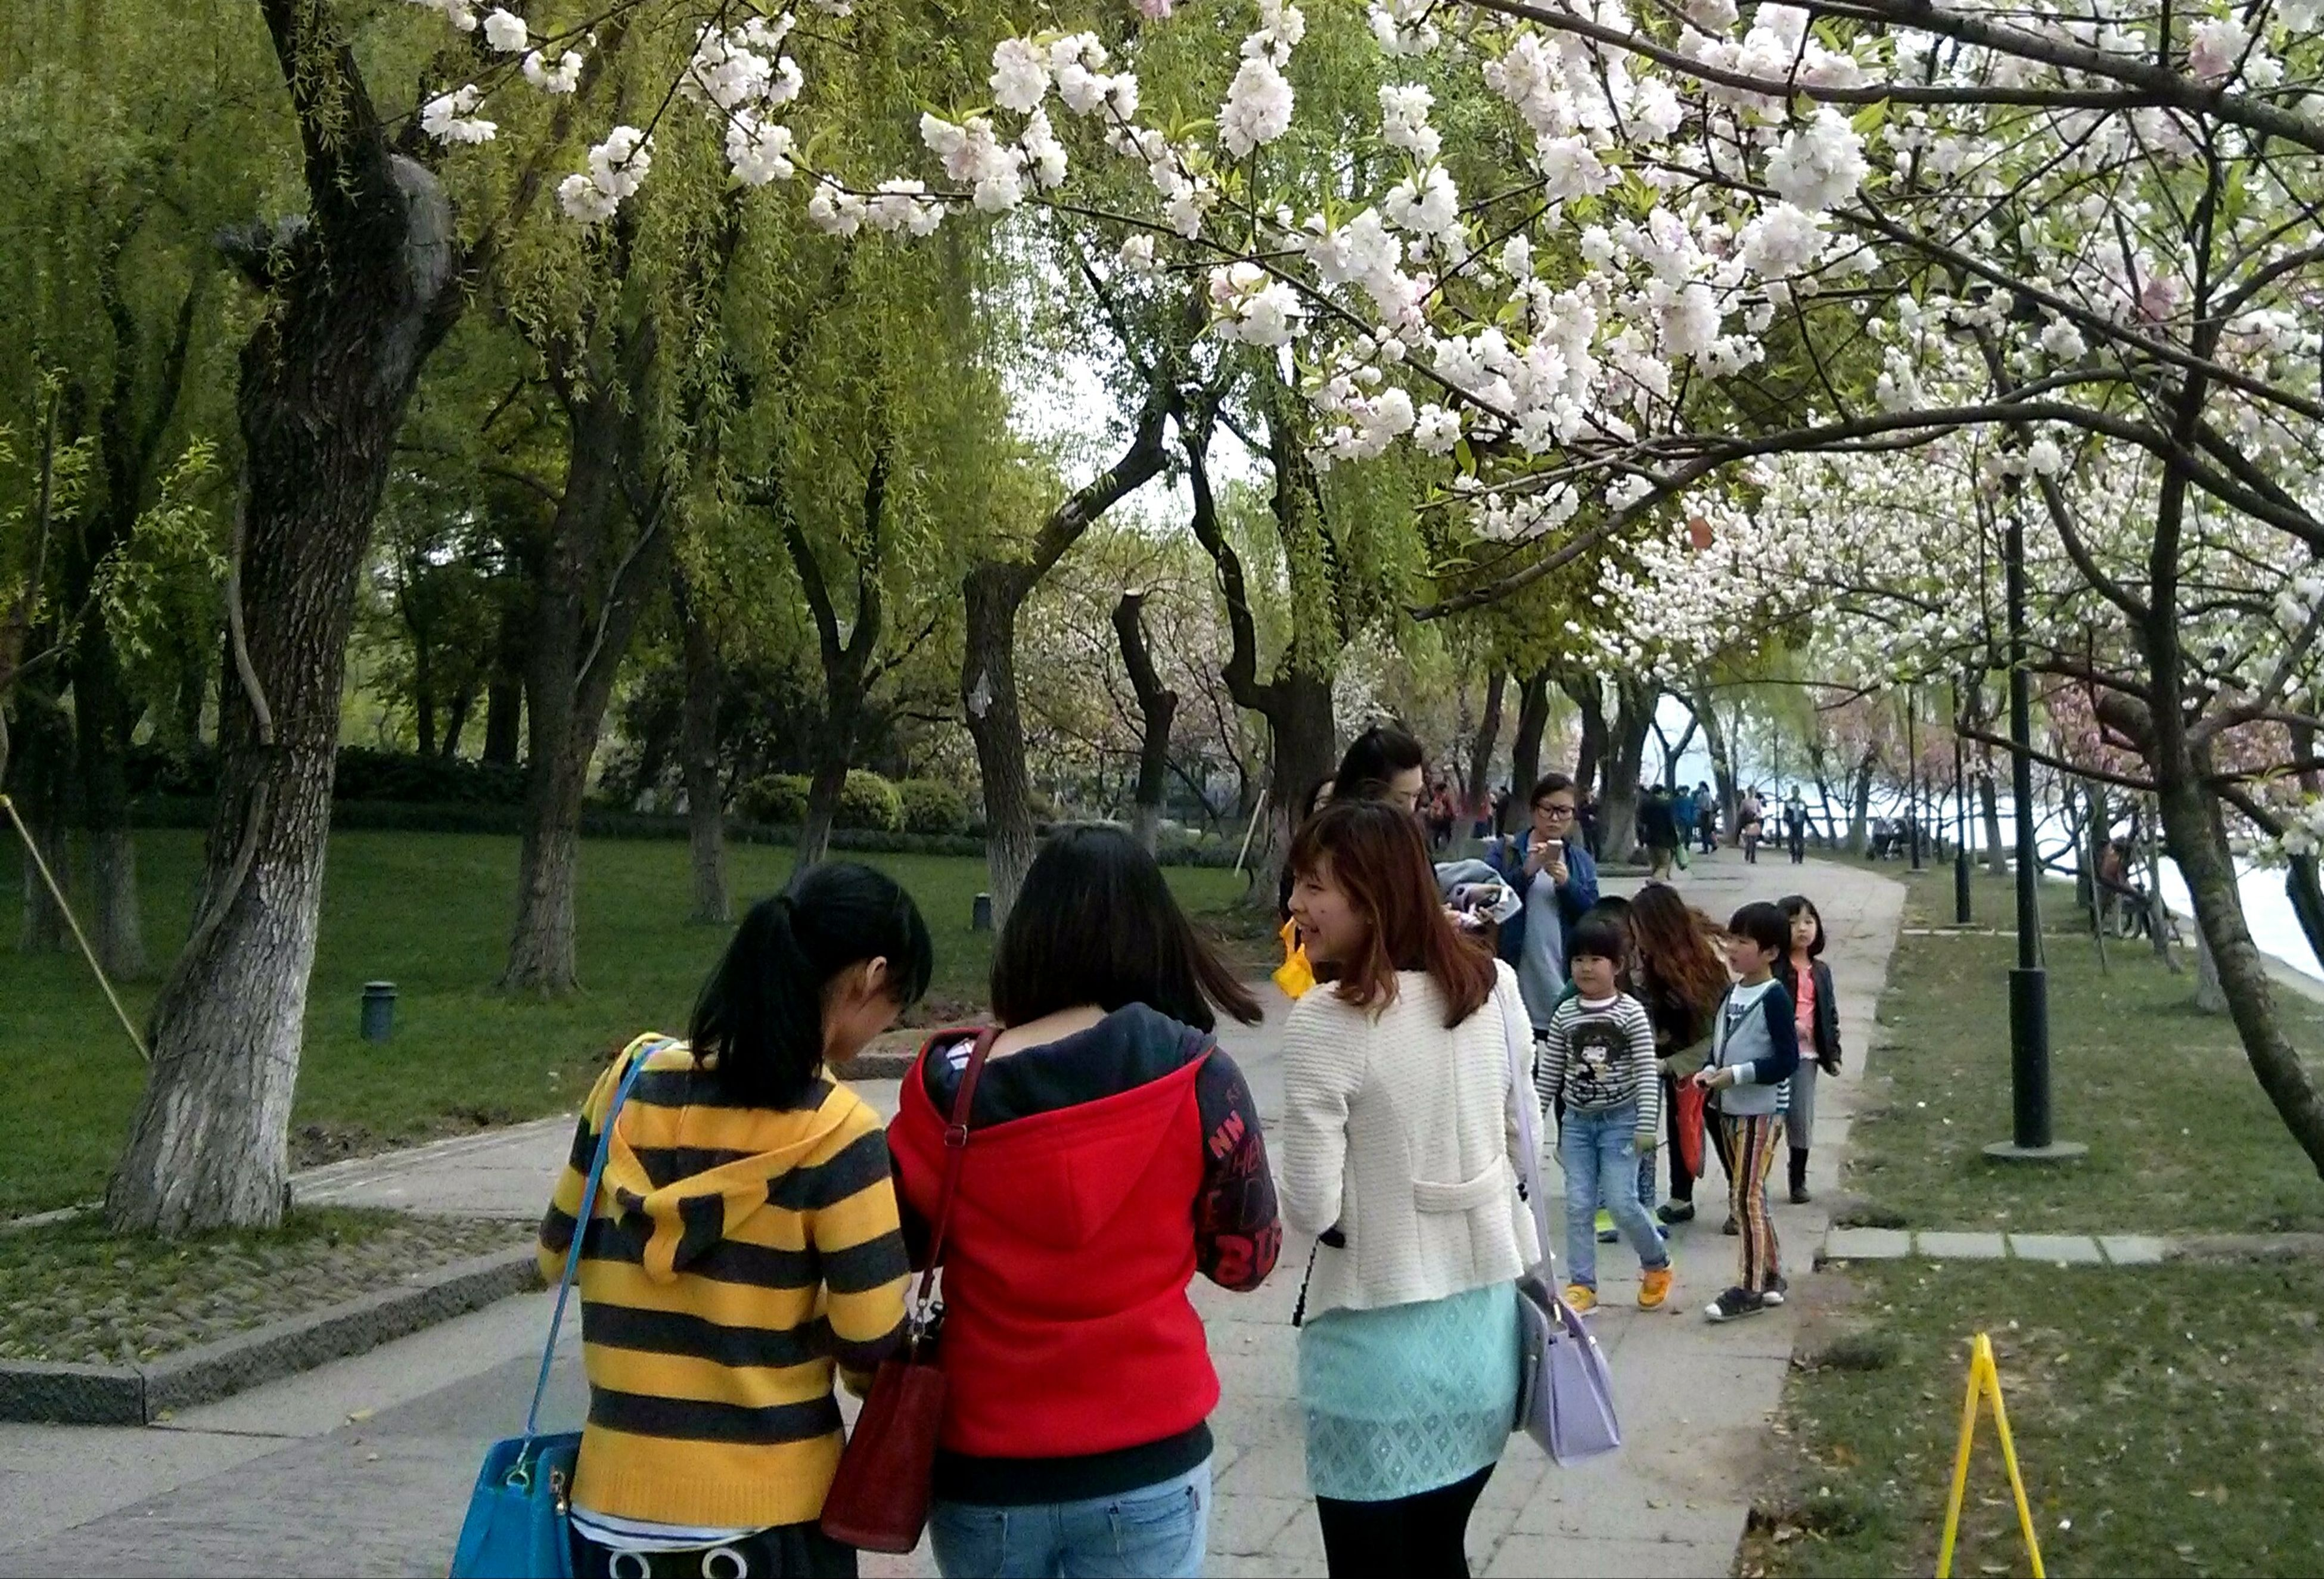 tree, lifestyles, men, leisure activity, person, togetherness, rear view, bonding, casual clothing, park - man made space, love, friendship, full length, sitting, walking, large group of people, day, growth